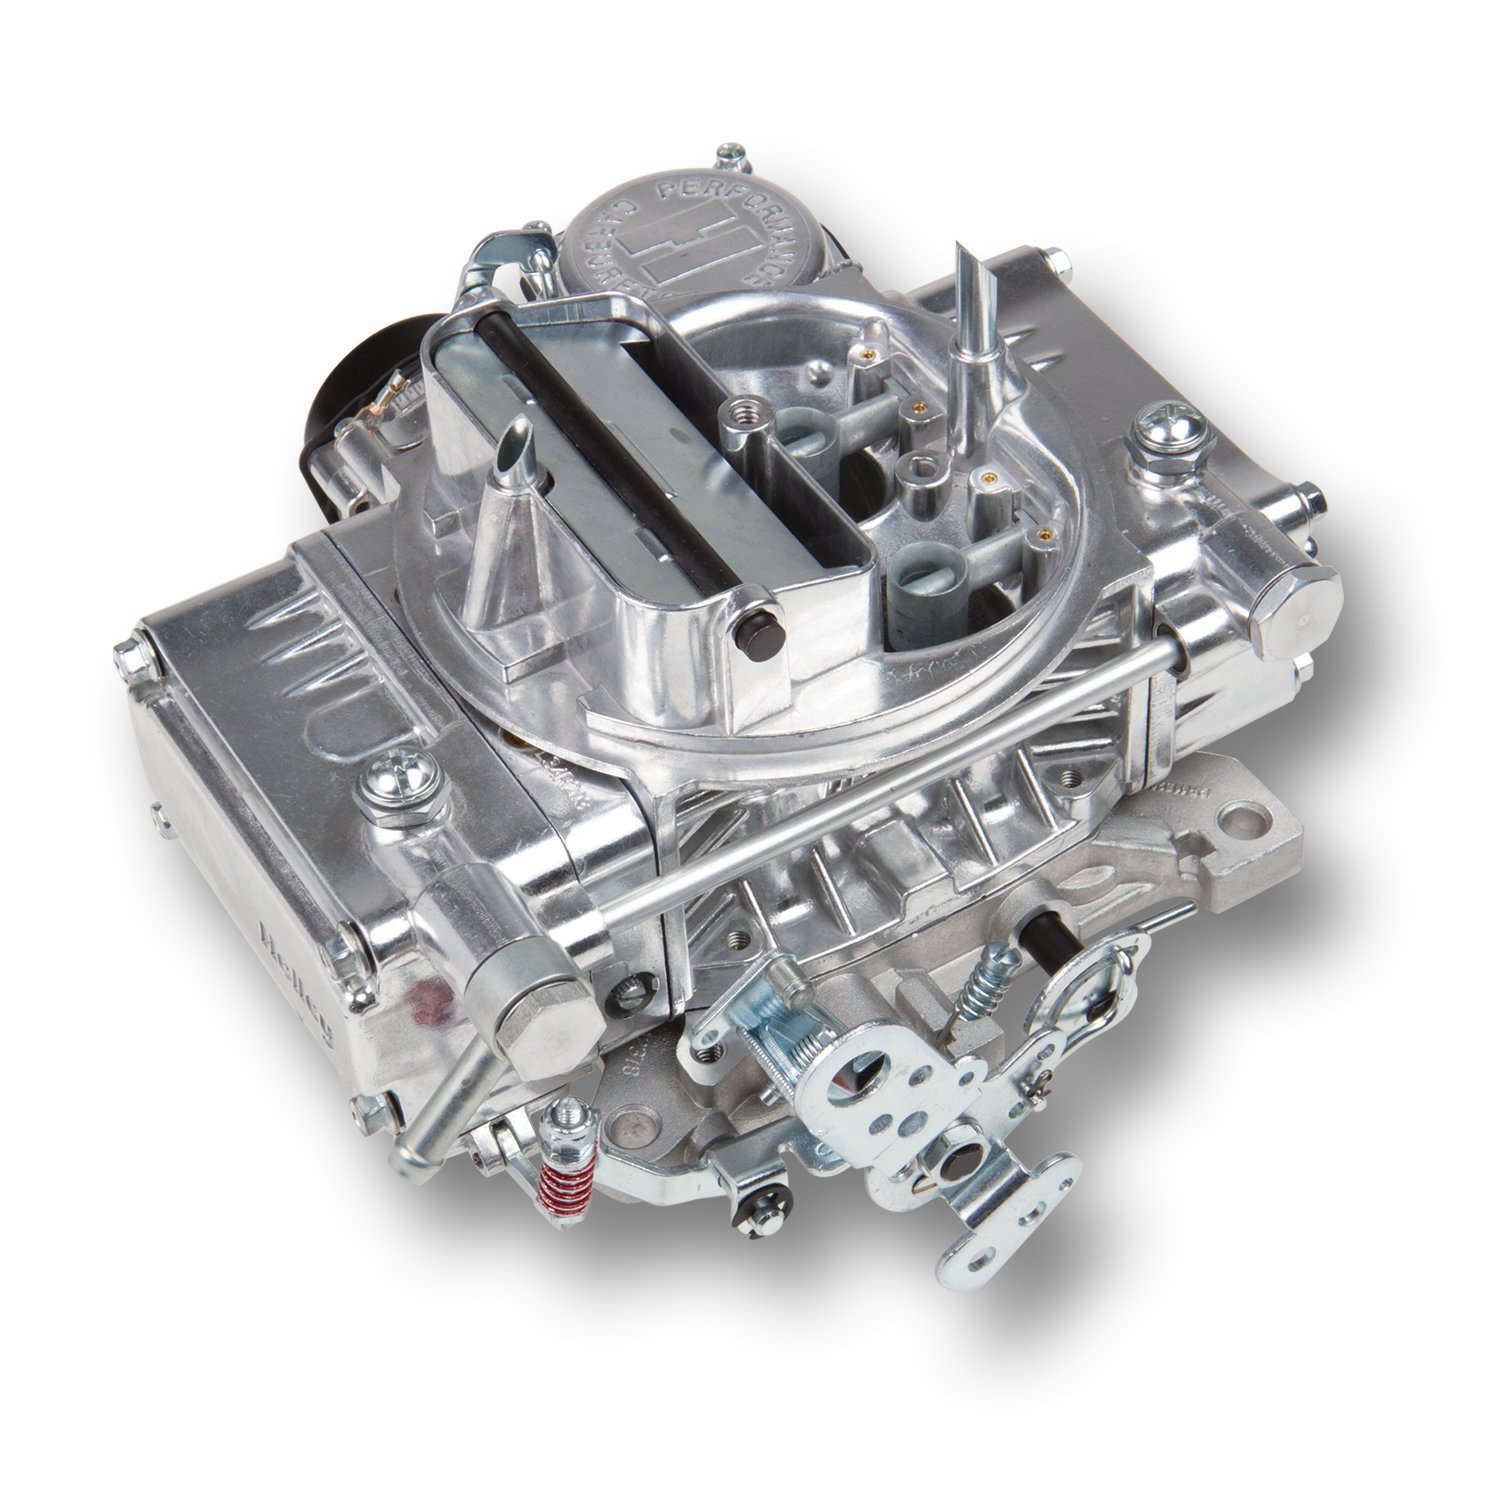 hight resolution of 0 80457sa 600 cfm classic holley carburetor image